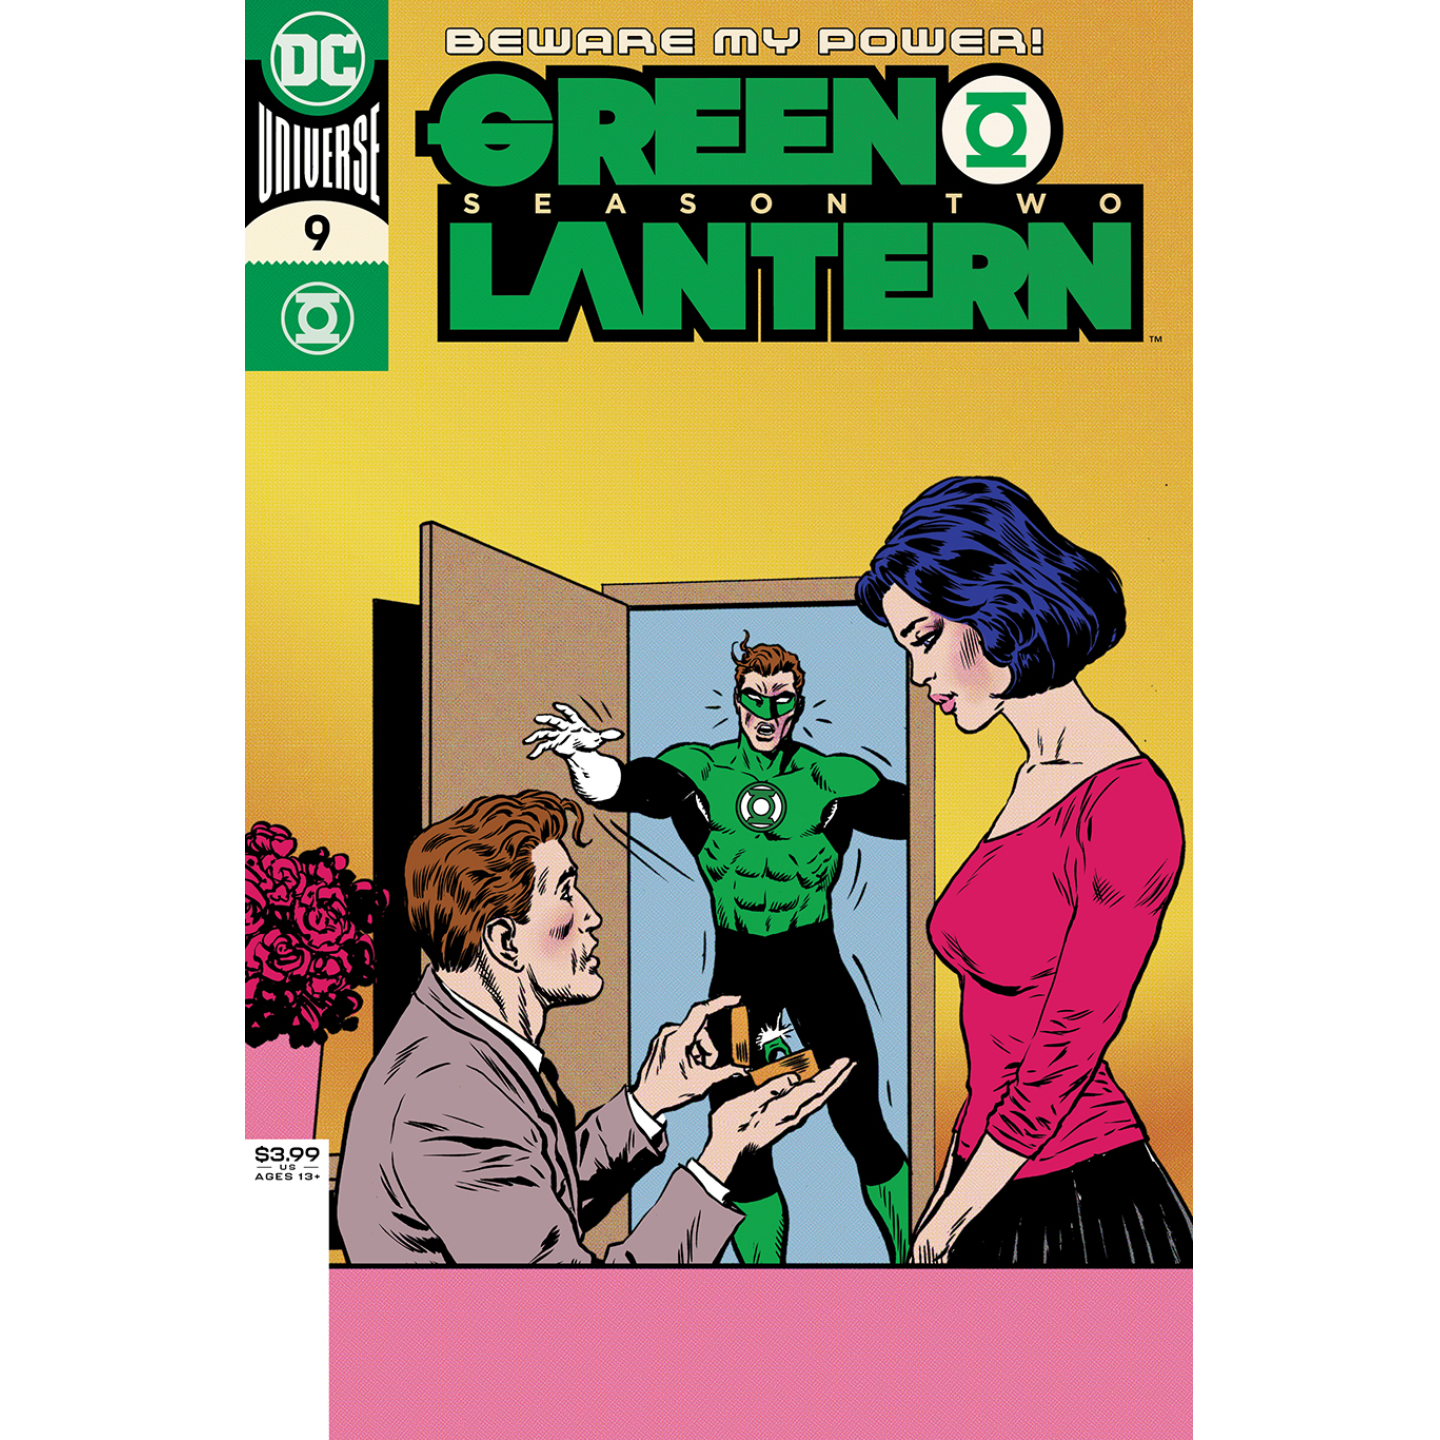 GREEN LANTERN SEASON TWO #9 (OF 12) CVR A LIAM SHARP